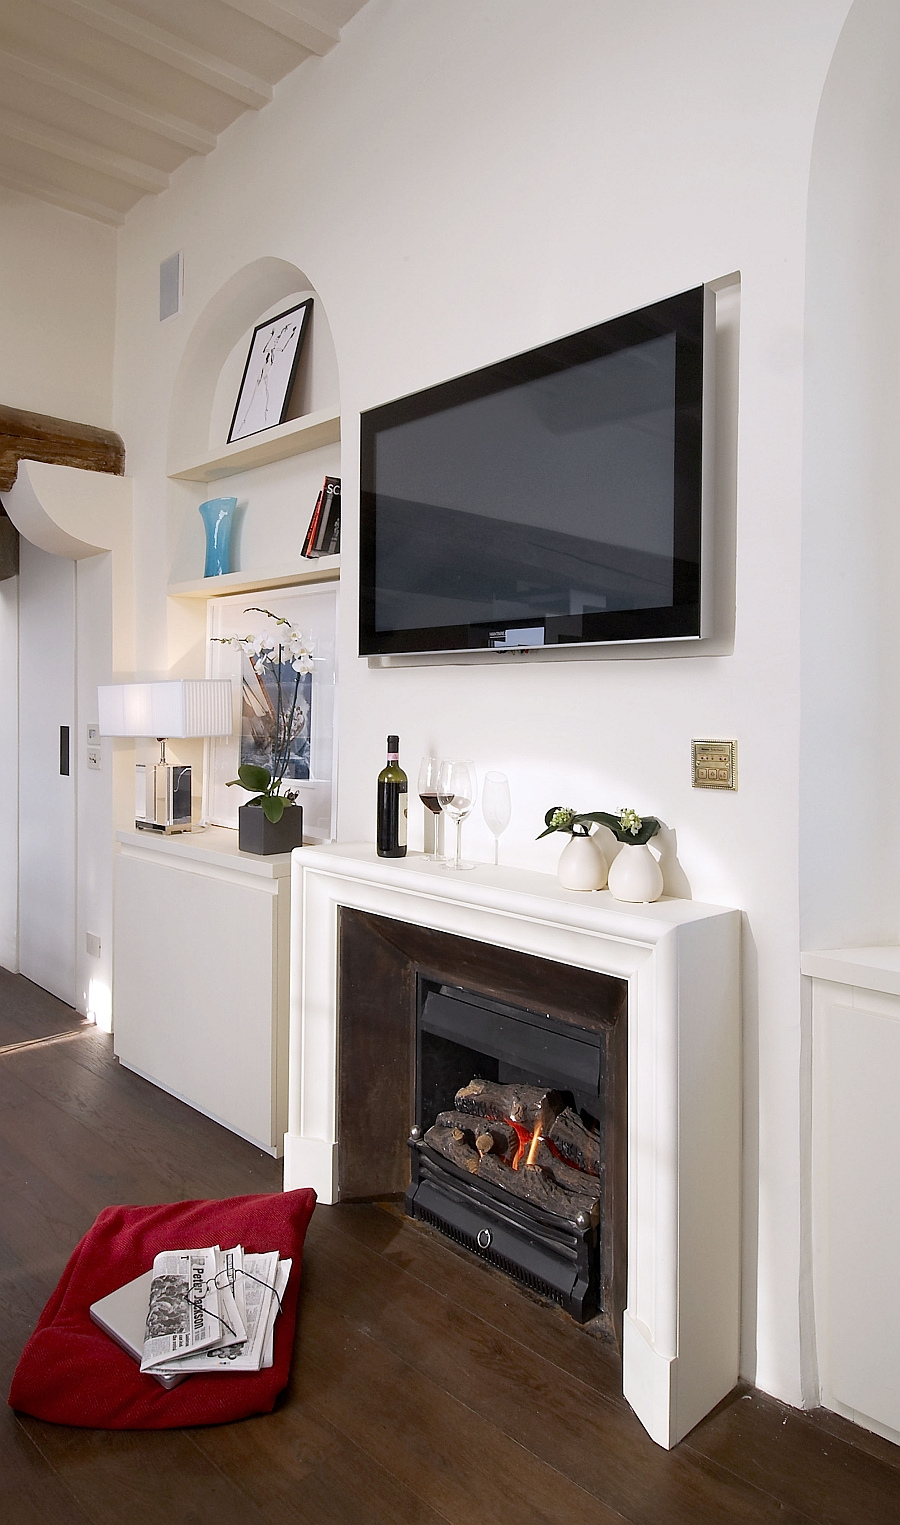 Wall-mounted television above the fireplace in the living room